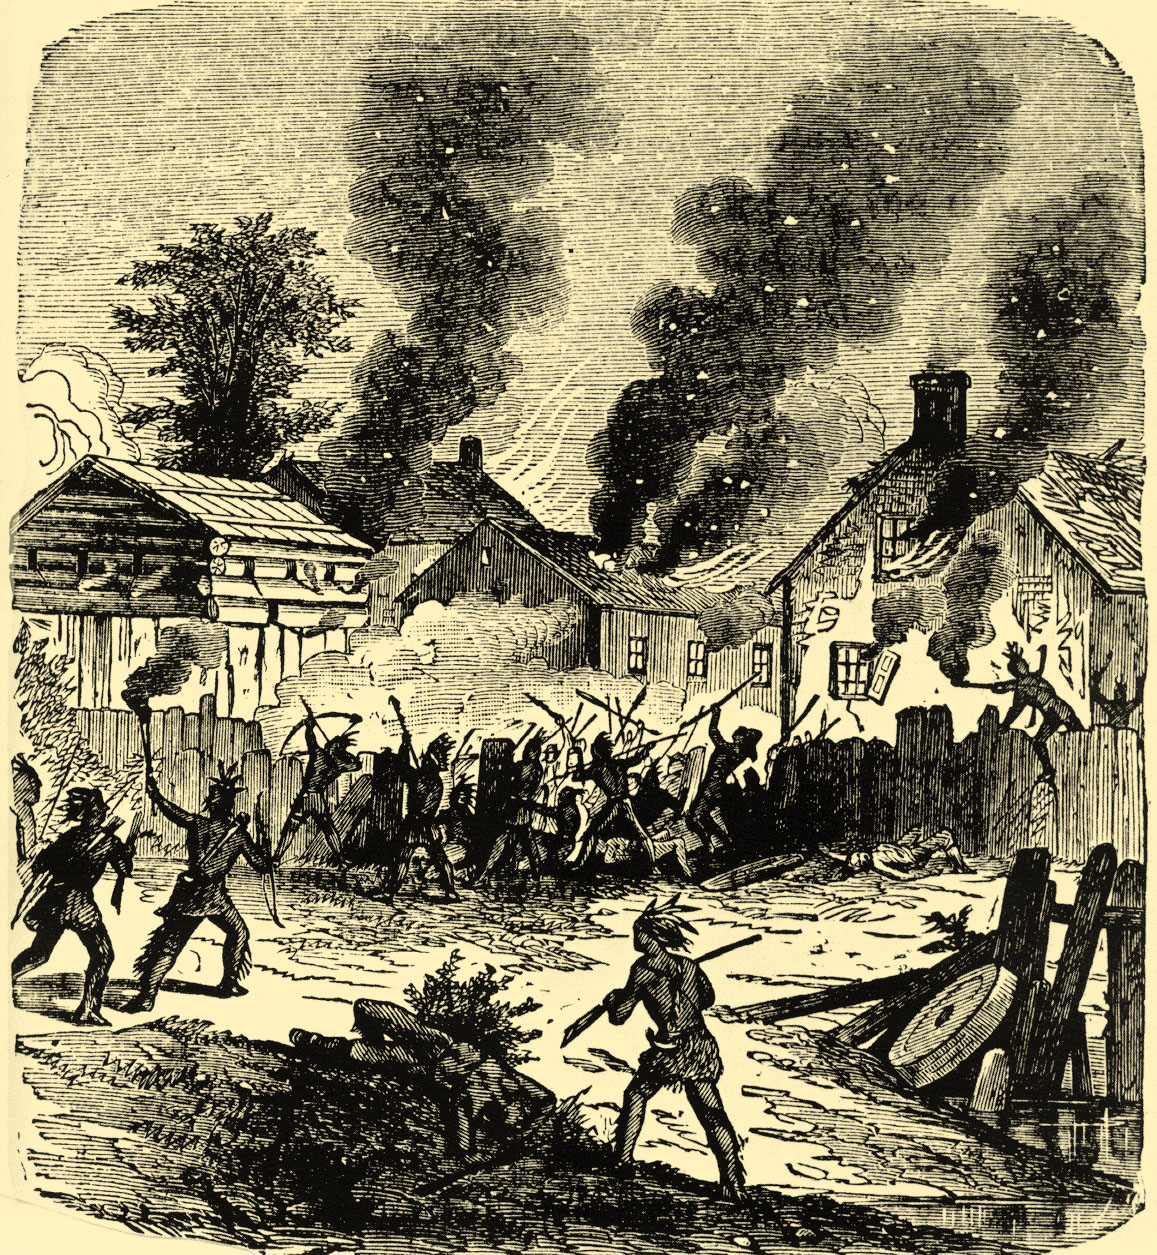 King Philip's War was a watershed moment in the history of early America, with casualties proportionally equivalent to the Civil War.